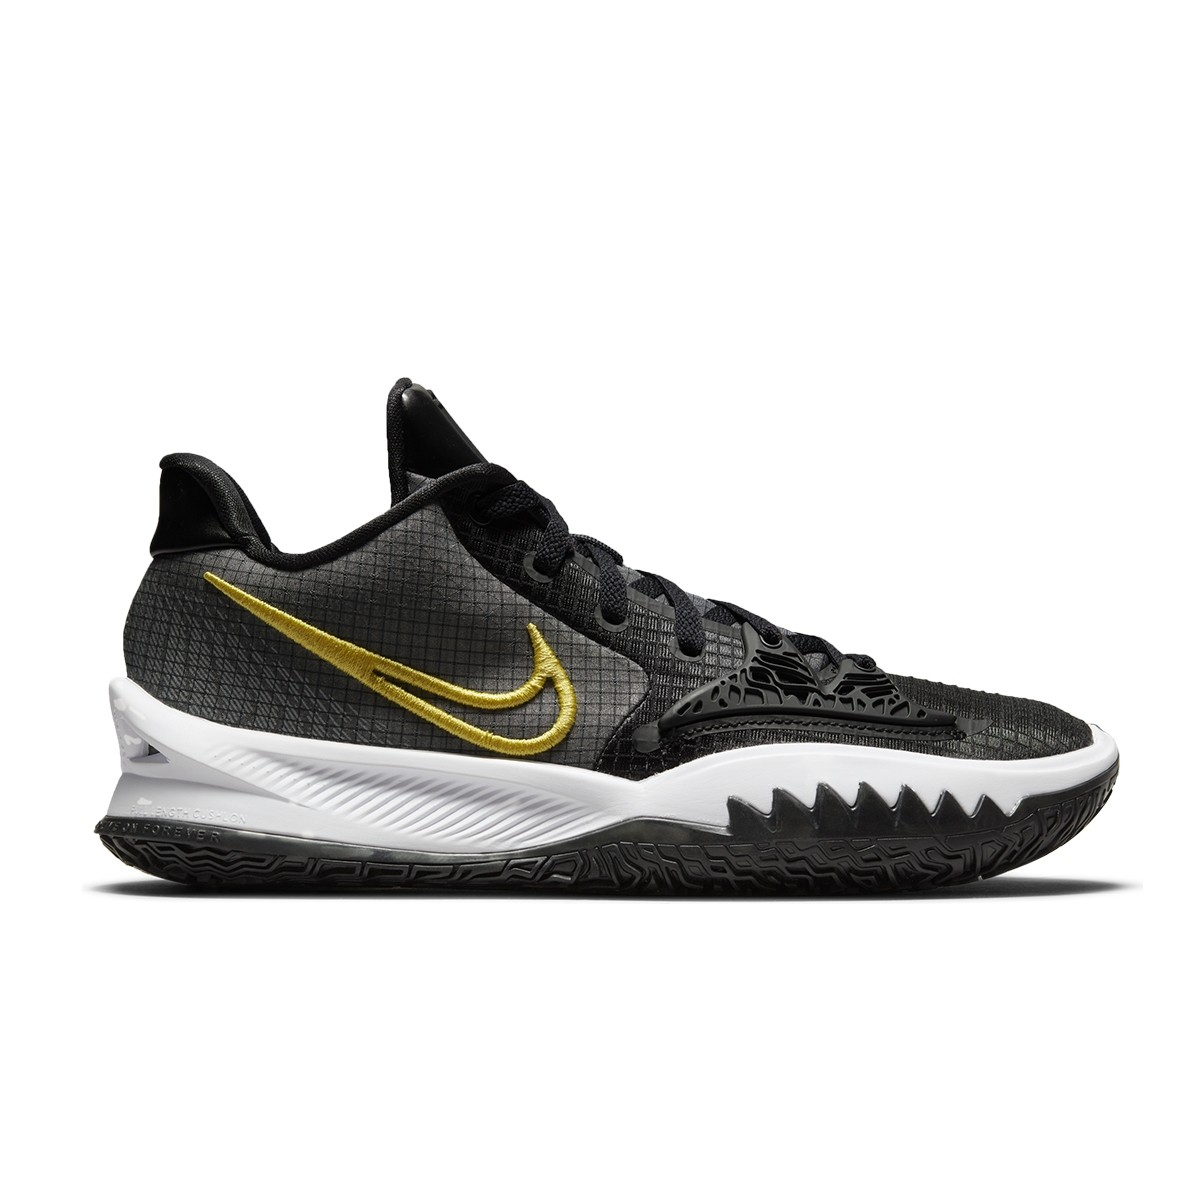 Nike Kyrie Low 4 'Black Gold'